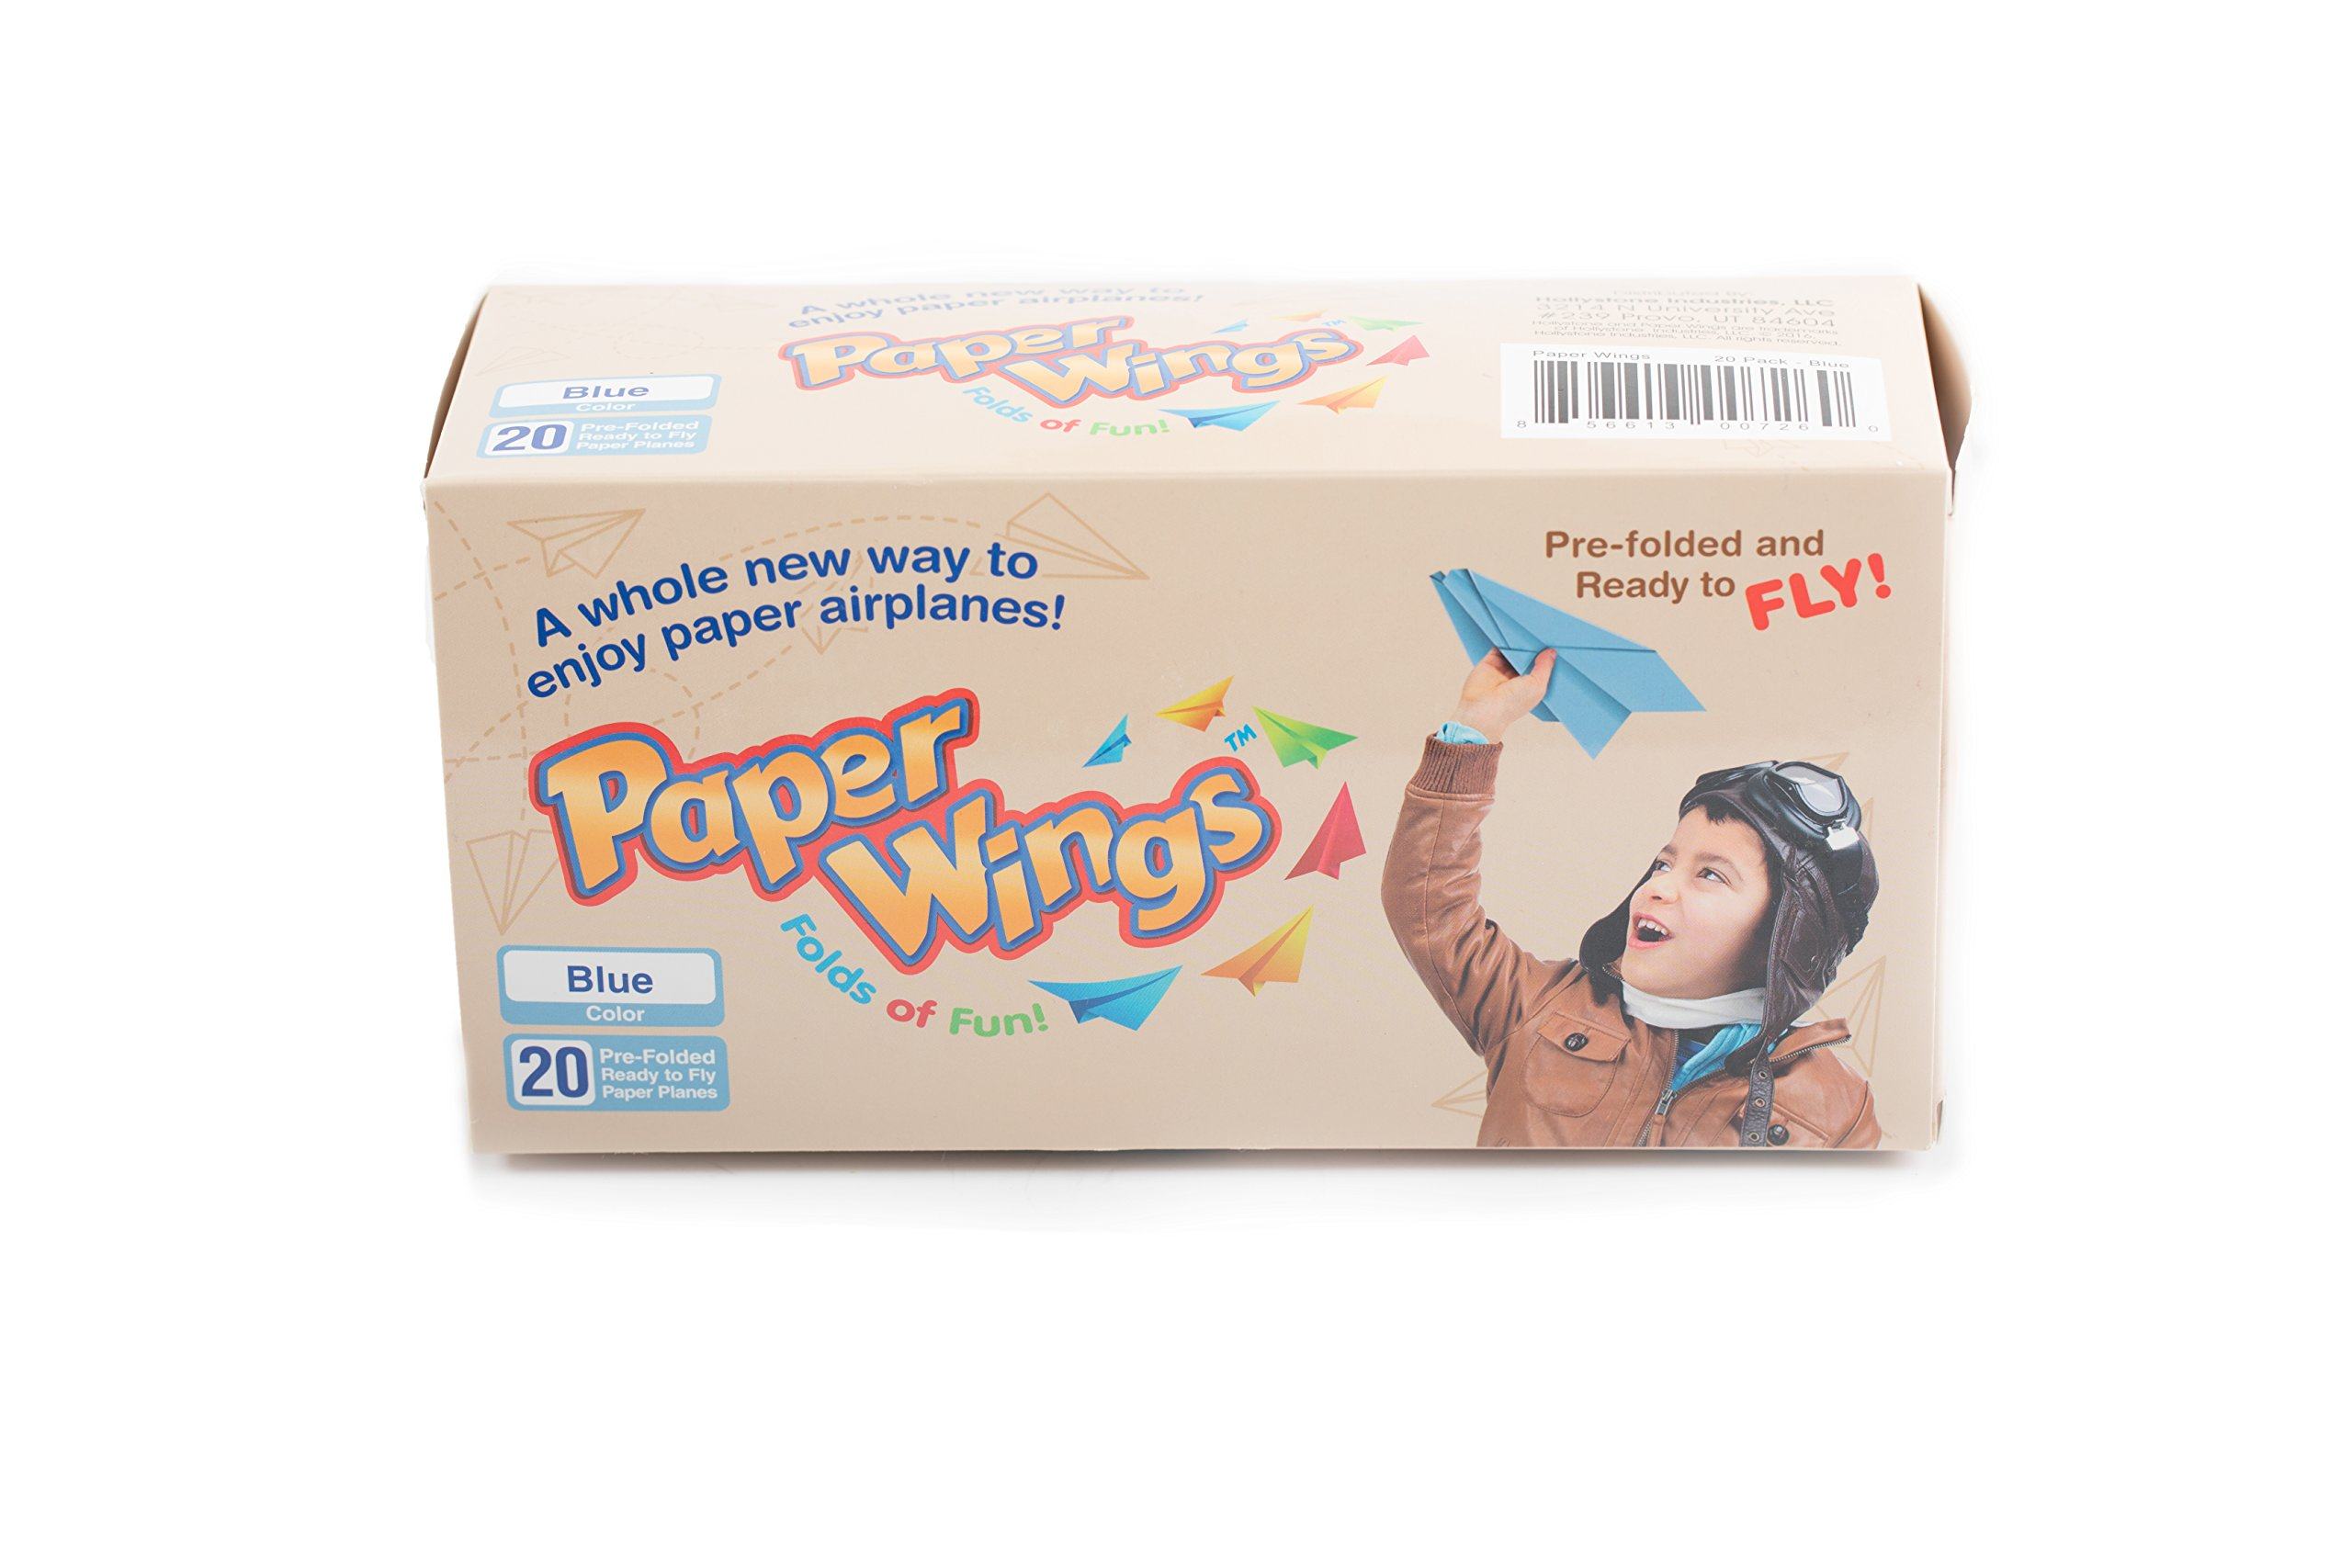 Paper Wings Pre-Made Paper Airplanes, Colorful Pre-Folded Airplane Models, Indoor & Outdoor Toys for Kids or Parties (Blue, Set of 20)